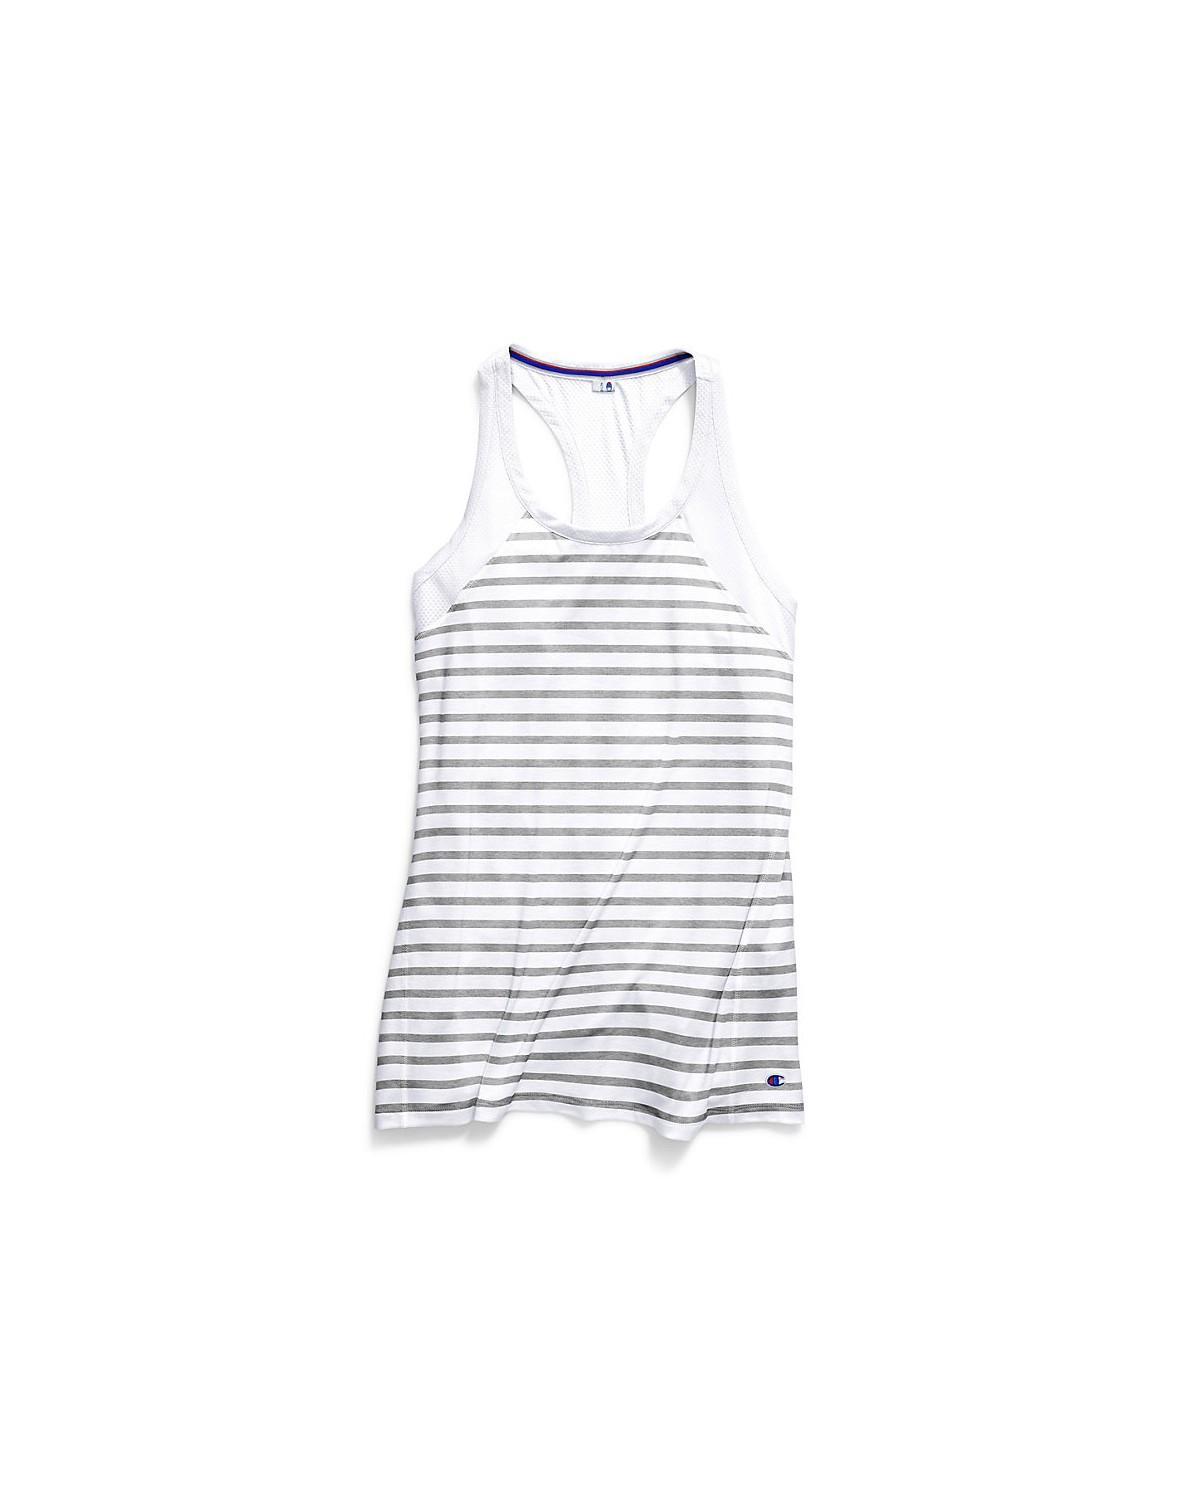 W9283 Champion White/Oxford Grey Heather Stripe